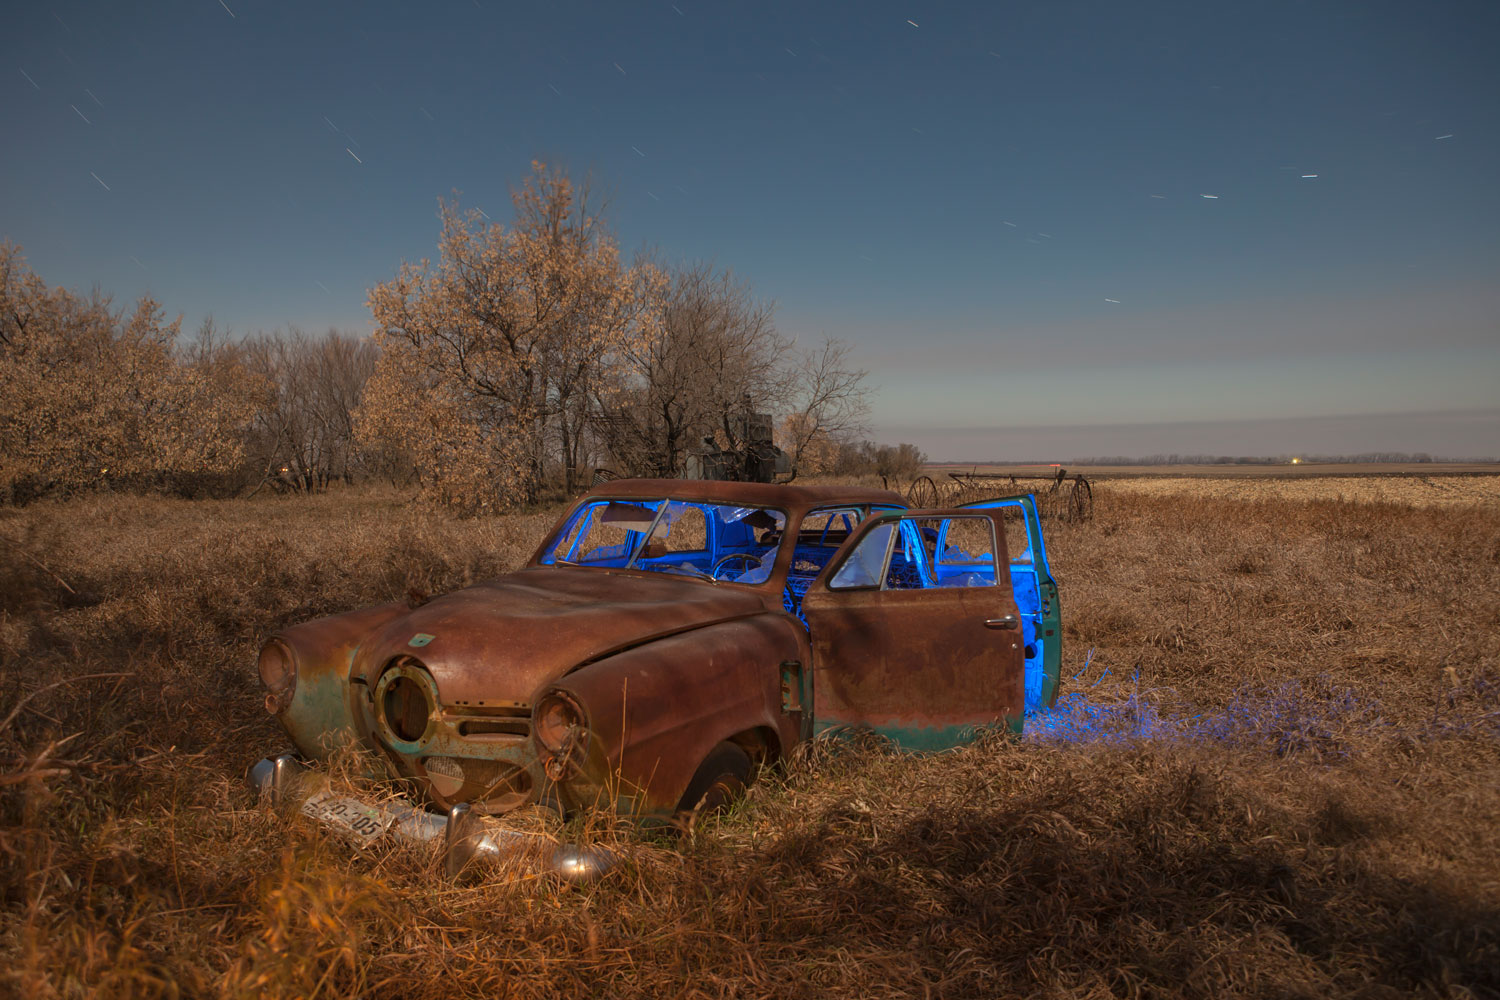 Studebaker - Sherbrooke, North Dakota - The Flash Nites